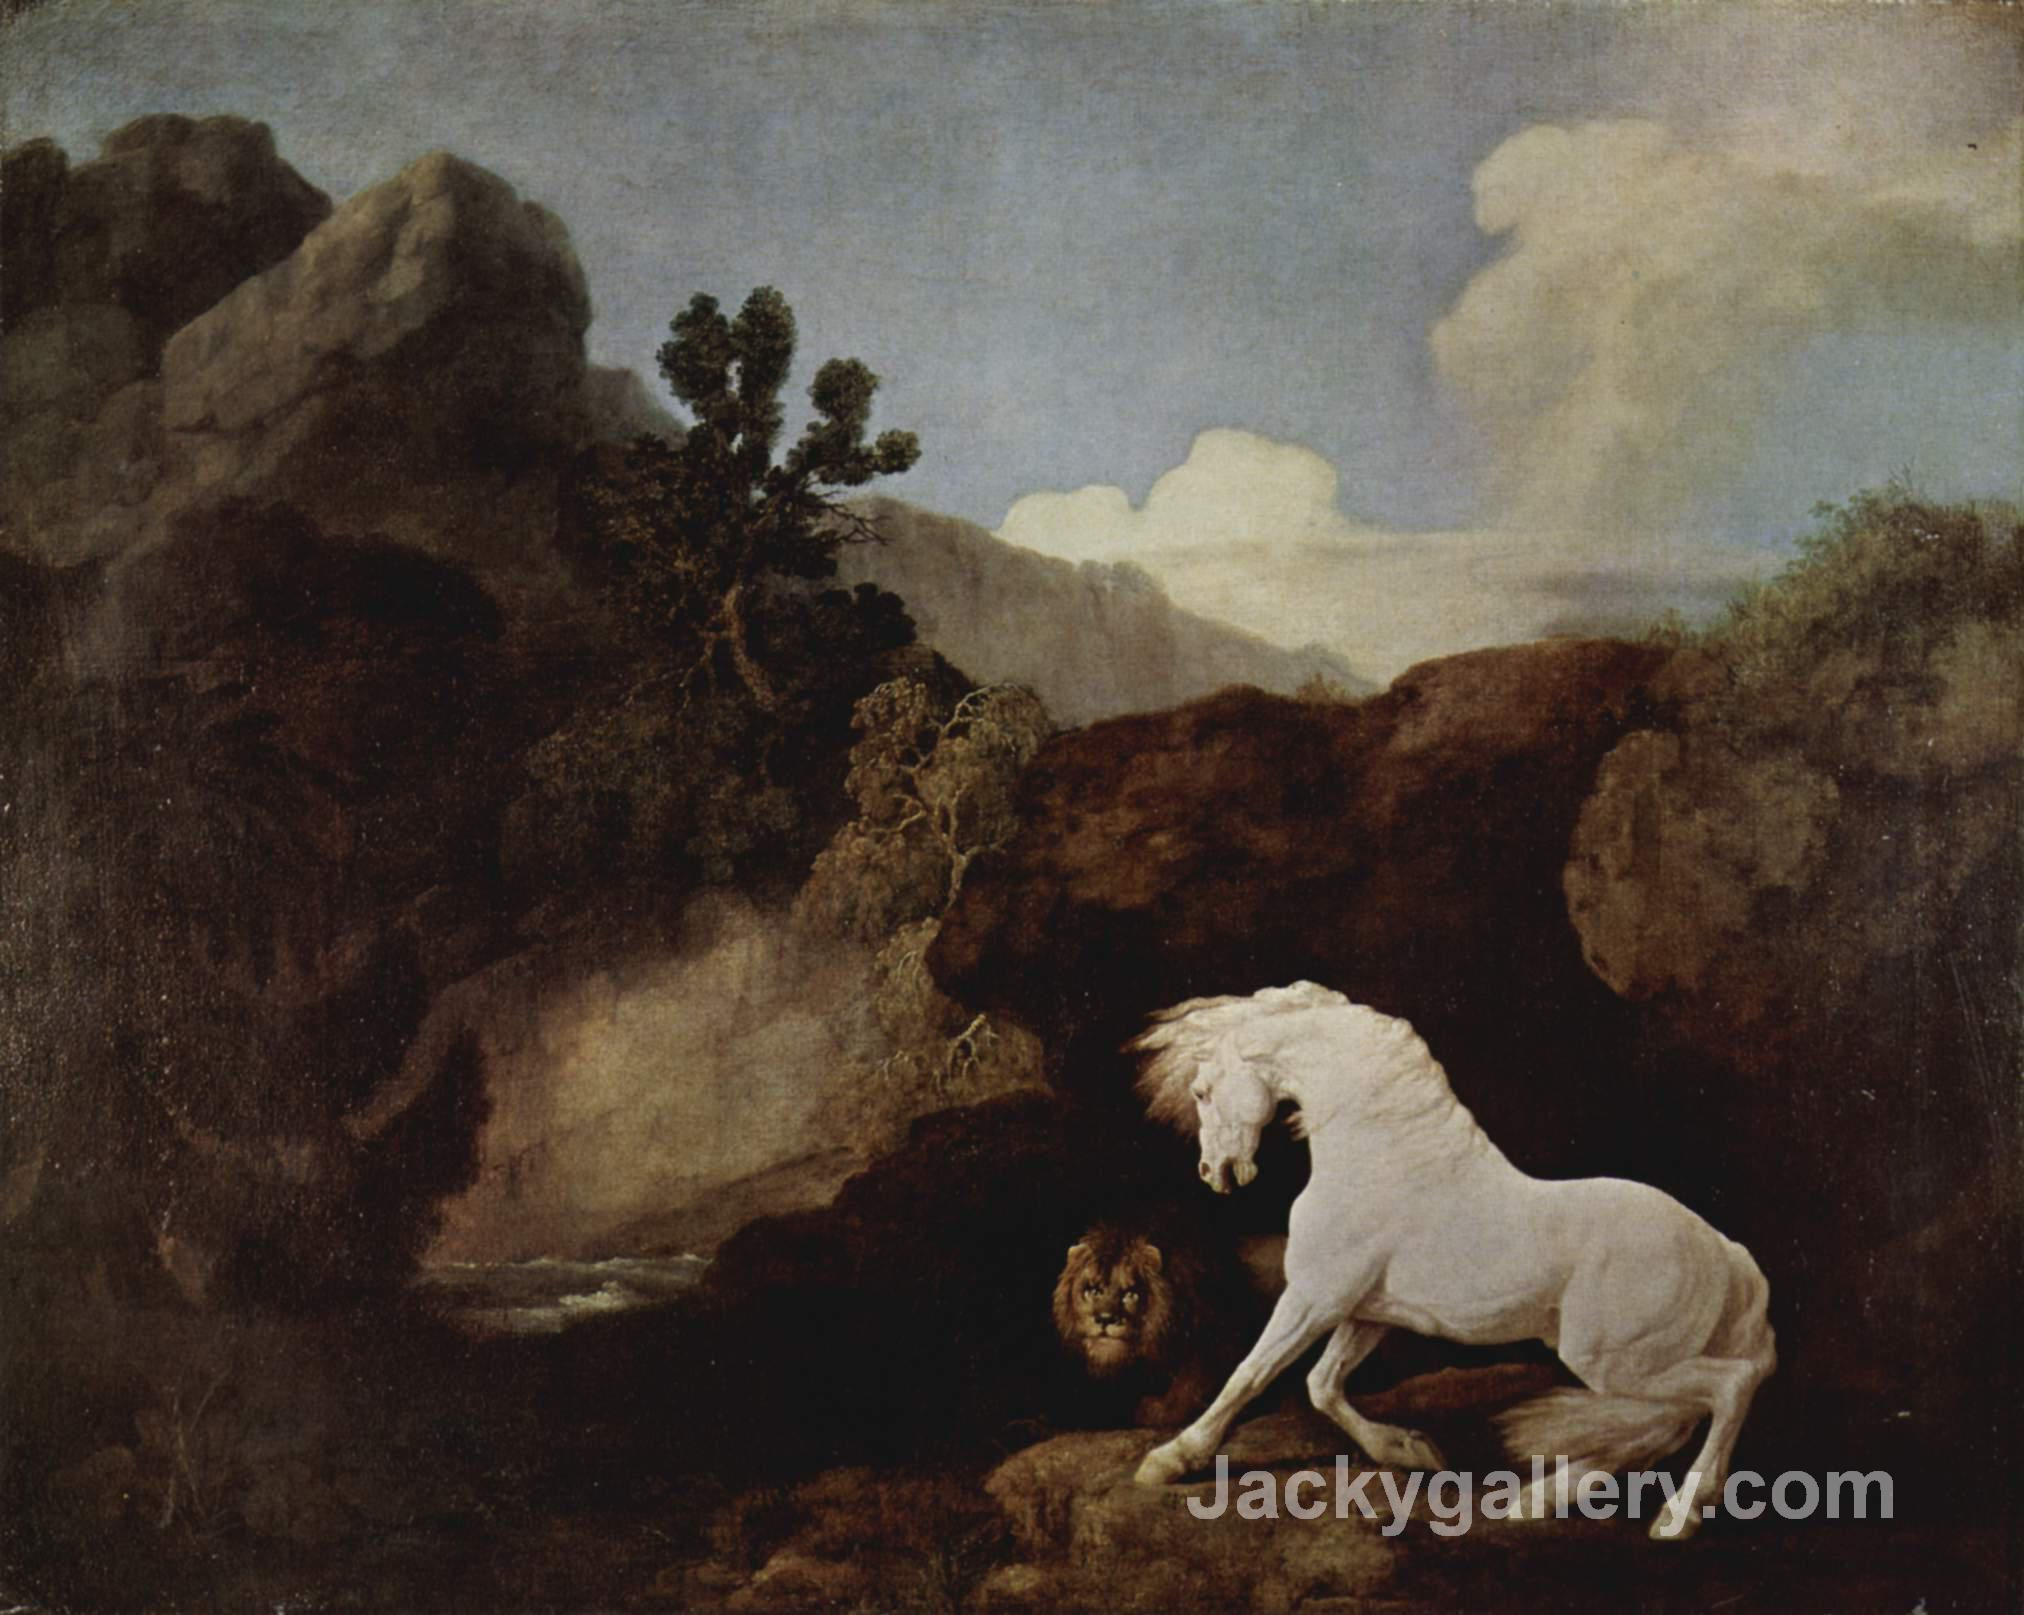 A Horse Frightened by a Lion by George Stubbs paintings reproduction